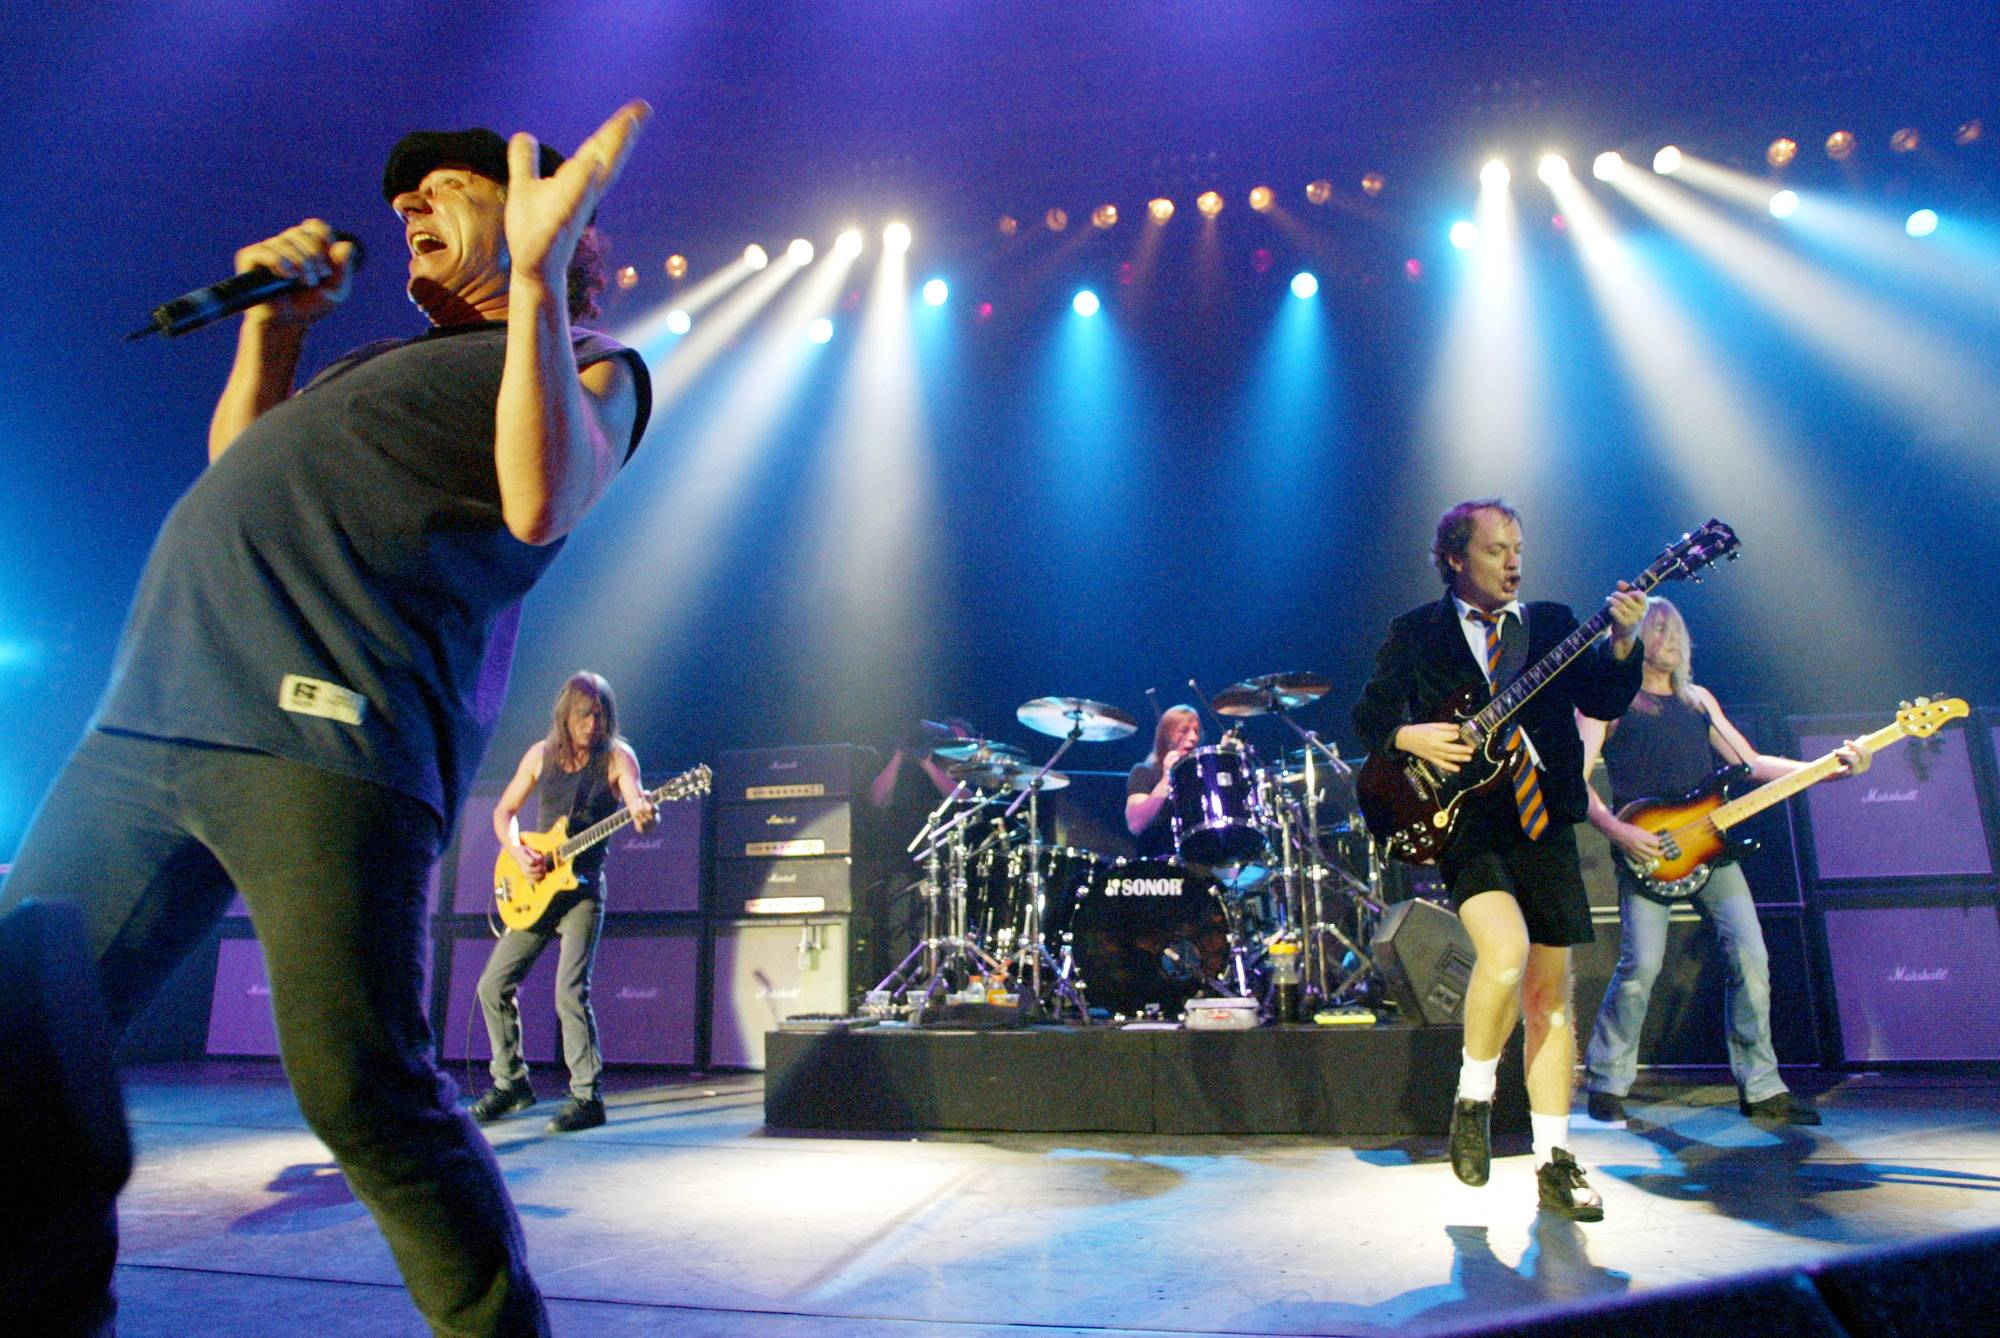 "This June 17, 2003 file photo shows British rock band AC/DC, from left, Brian Johnson, Malcolm Young, Phil Rudd, Angus Young, and Cliff Williams performing on stage during a concert in Munich, southern Germany. Malcolm Young of AC/DC is taking a break from the band to focus on his health. The band posted on its Facebook page Wednesday that the 61-year-old guitarist is halting from the band ""due to ill health"" after 40 years."